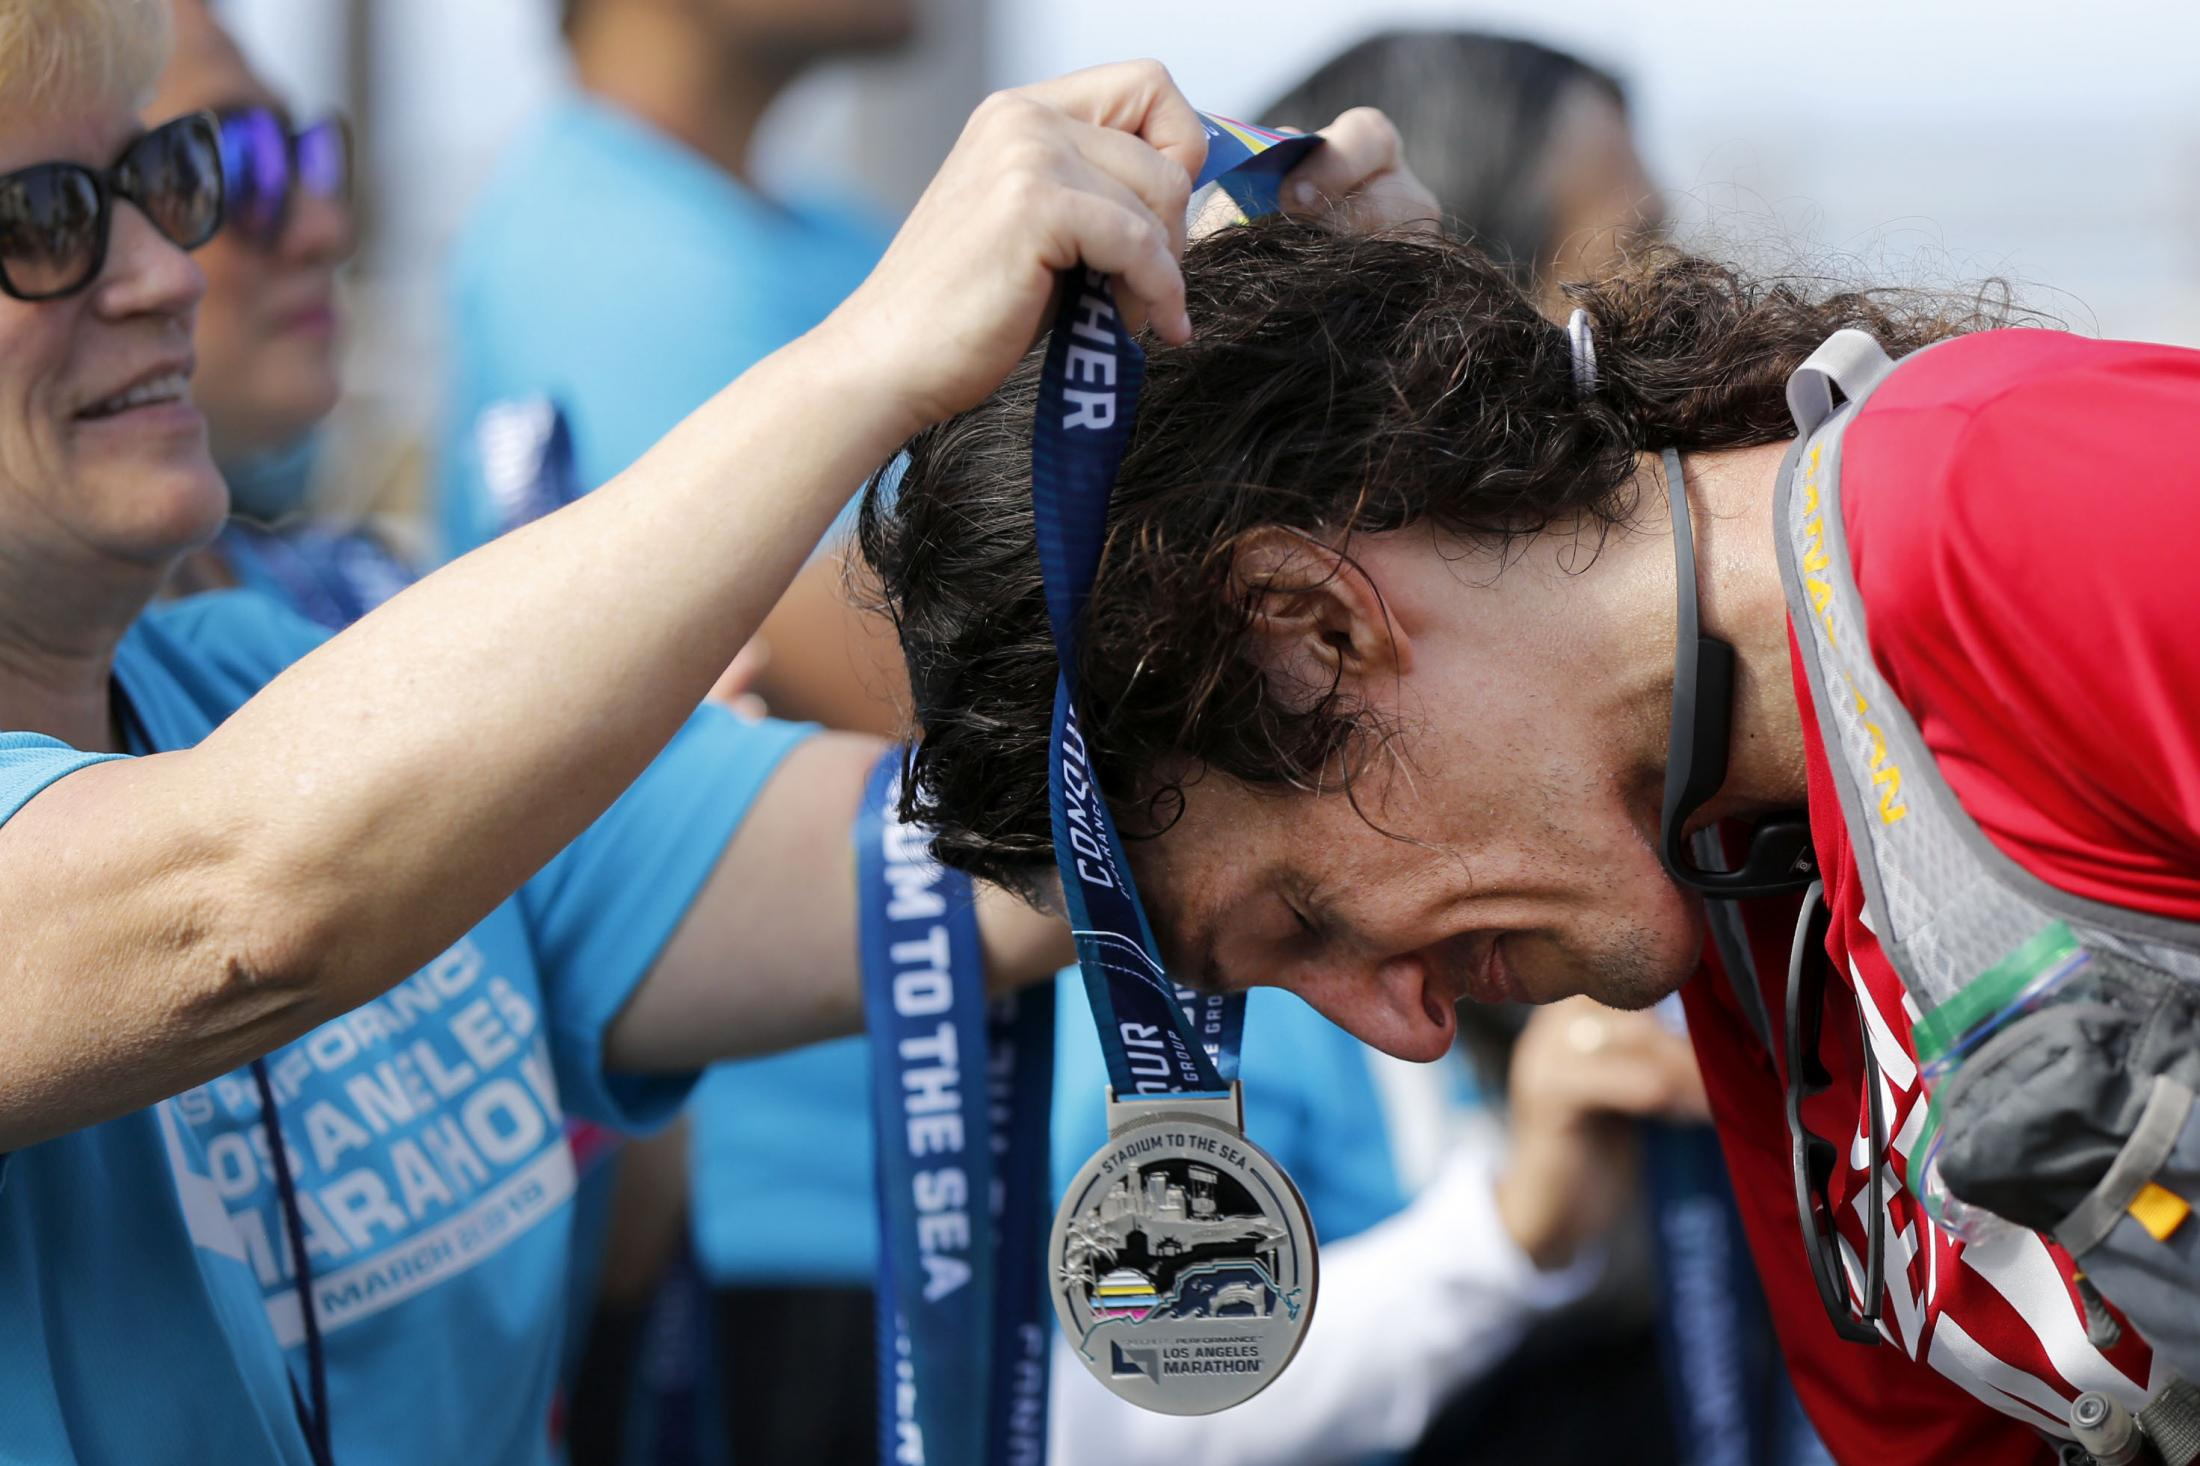 LOS ANGELES, CALIFORNIA - MARCH 24:  A runner accepts a medal for finishing the 2019 Skechers Performance Los Angeles Marathon on March 24, 2019 in Los Angeles, California. (Photo by Katharine Lotze/Getty Images)